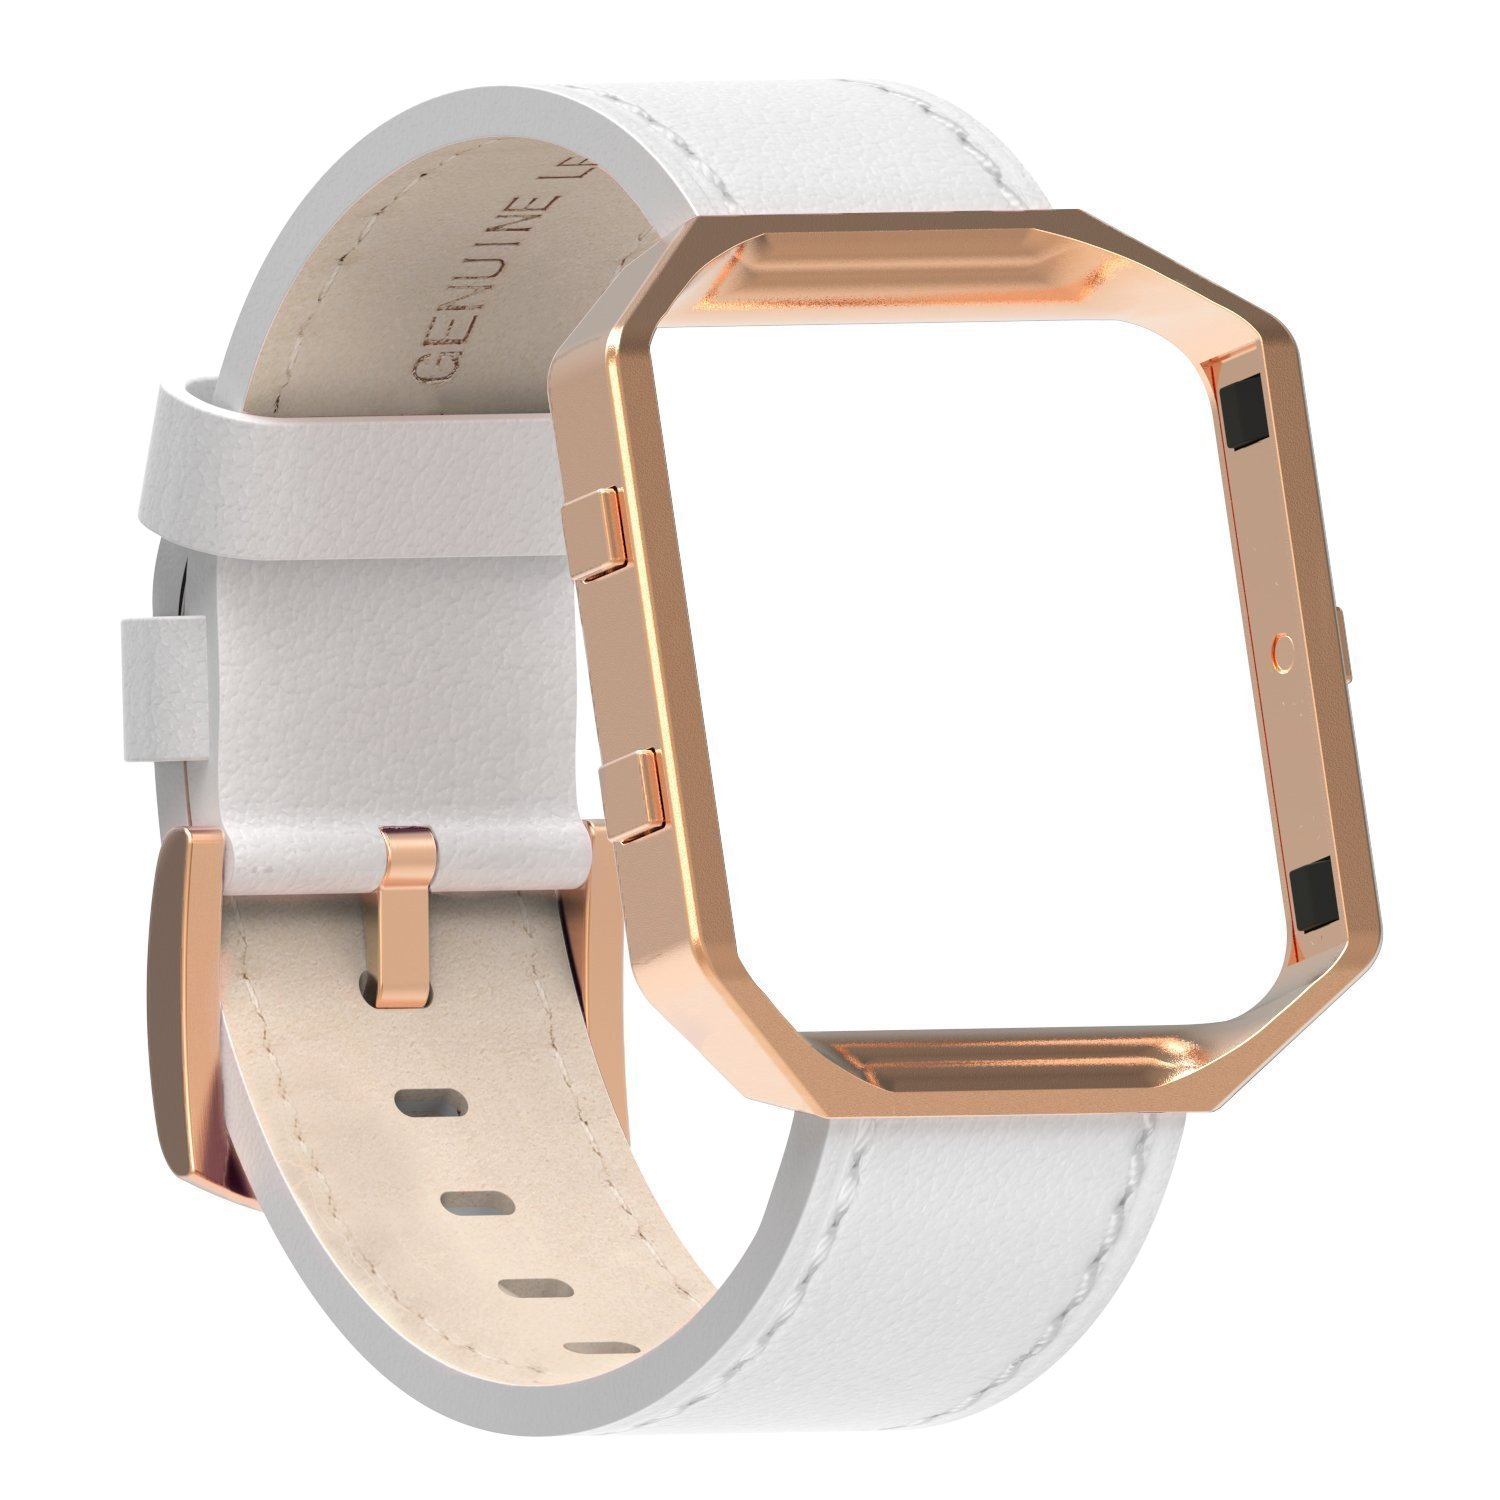 Austrake For Fitbit Blaze Bands Leather with Frame Large(6.7''-8.3''), Fitbit Blaze Band with Stainless Steel Buckle for Women Men